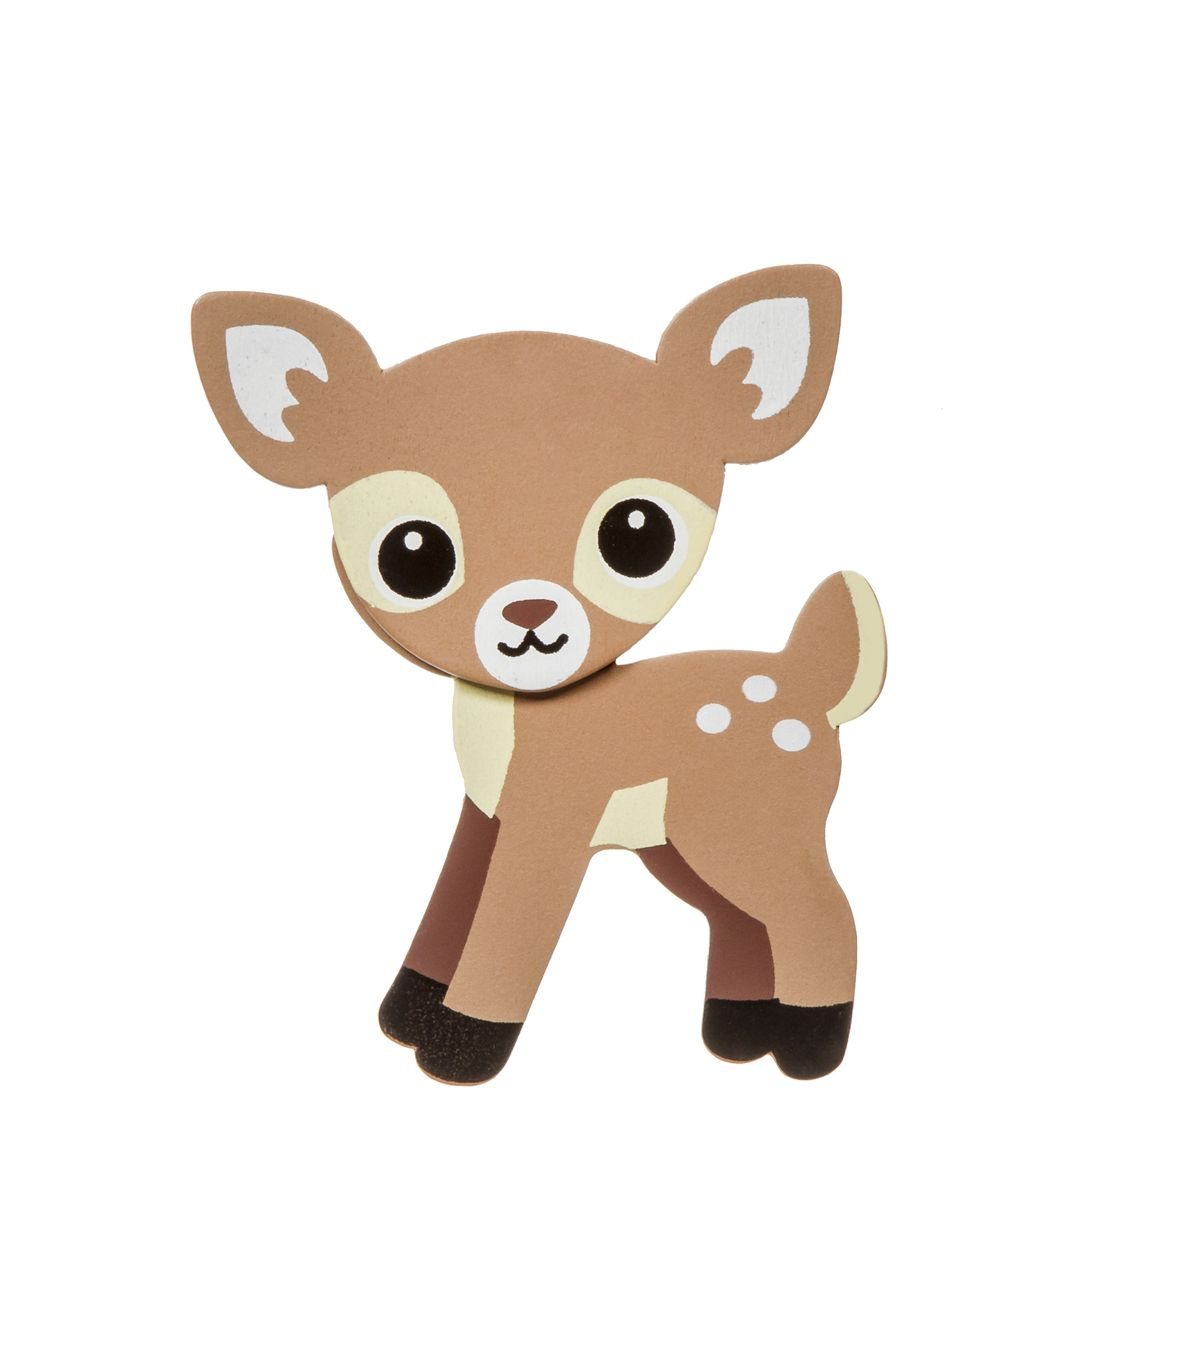 Painted wood shape deerwoodland. Woodland clipart woods animal